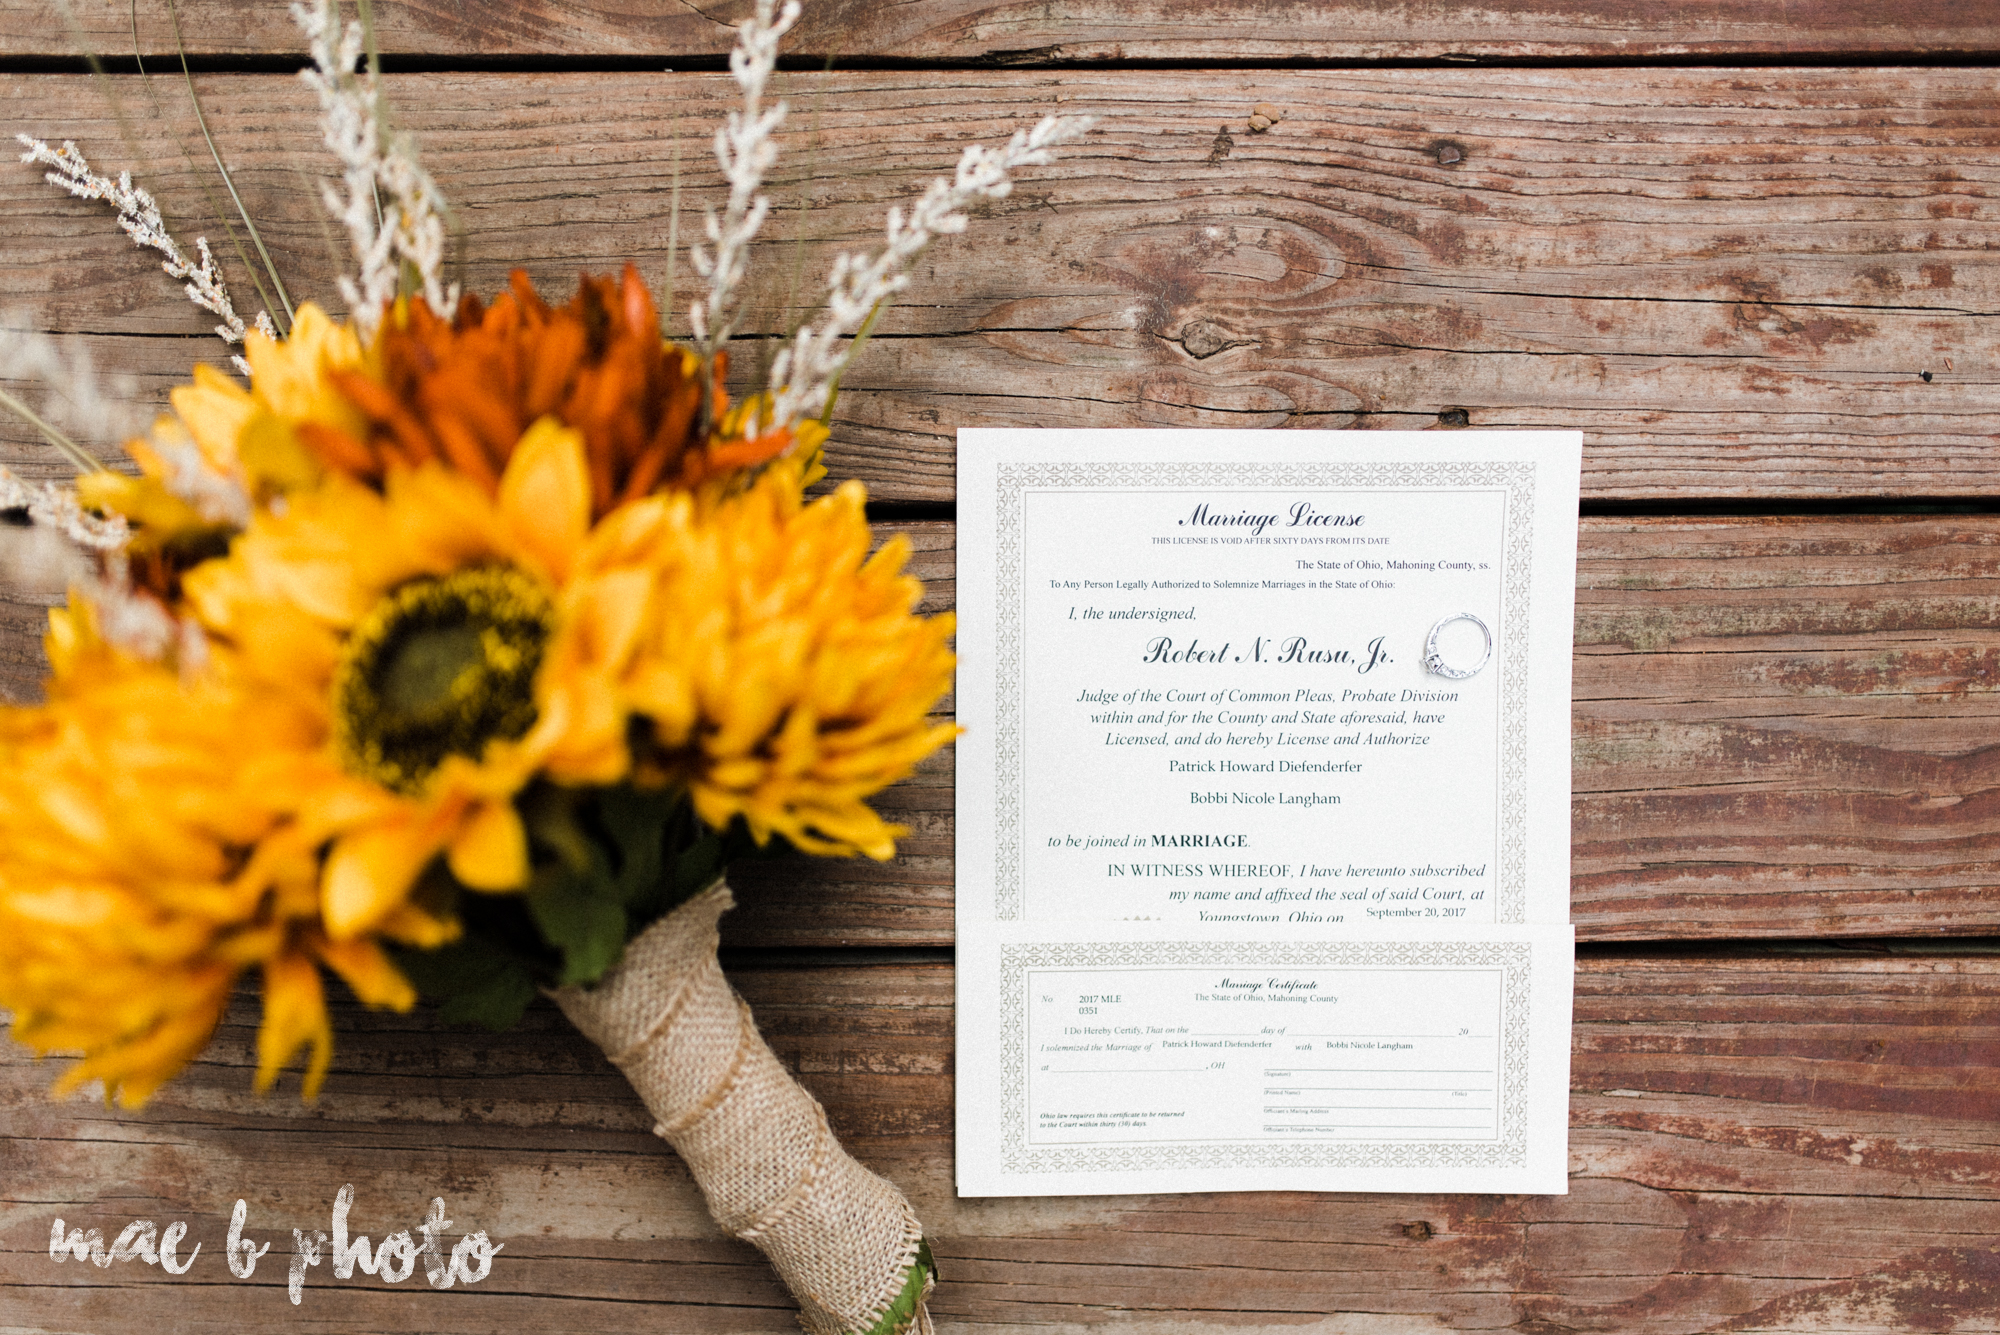 bobbi and pat's intimate fall cabin elopement in hocking hills old man's cave and rock house in logan ohio photographed by youngstown wedding photographer mae b photo-5.jpg